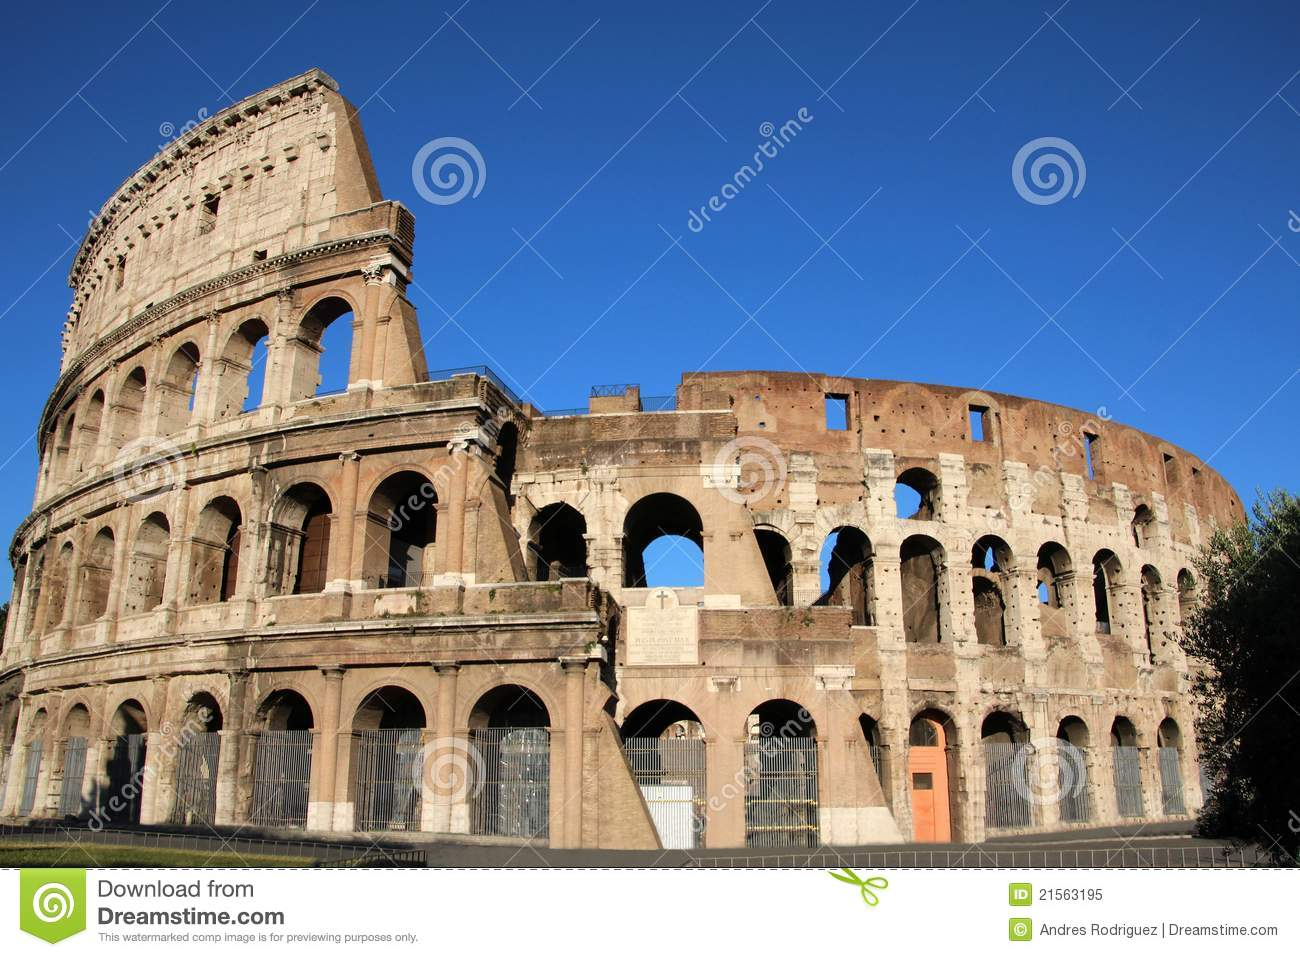 an examination of the architecture of the roman coliseums An amphitheatre was a structure built throughout the roman empire where ordinary people could watch such spectacles as gladiator games amphitheatres are one of the best surviving examples of ancient roman architecture.